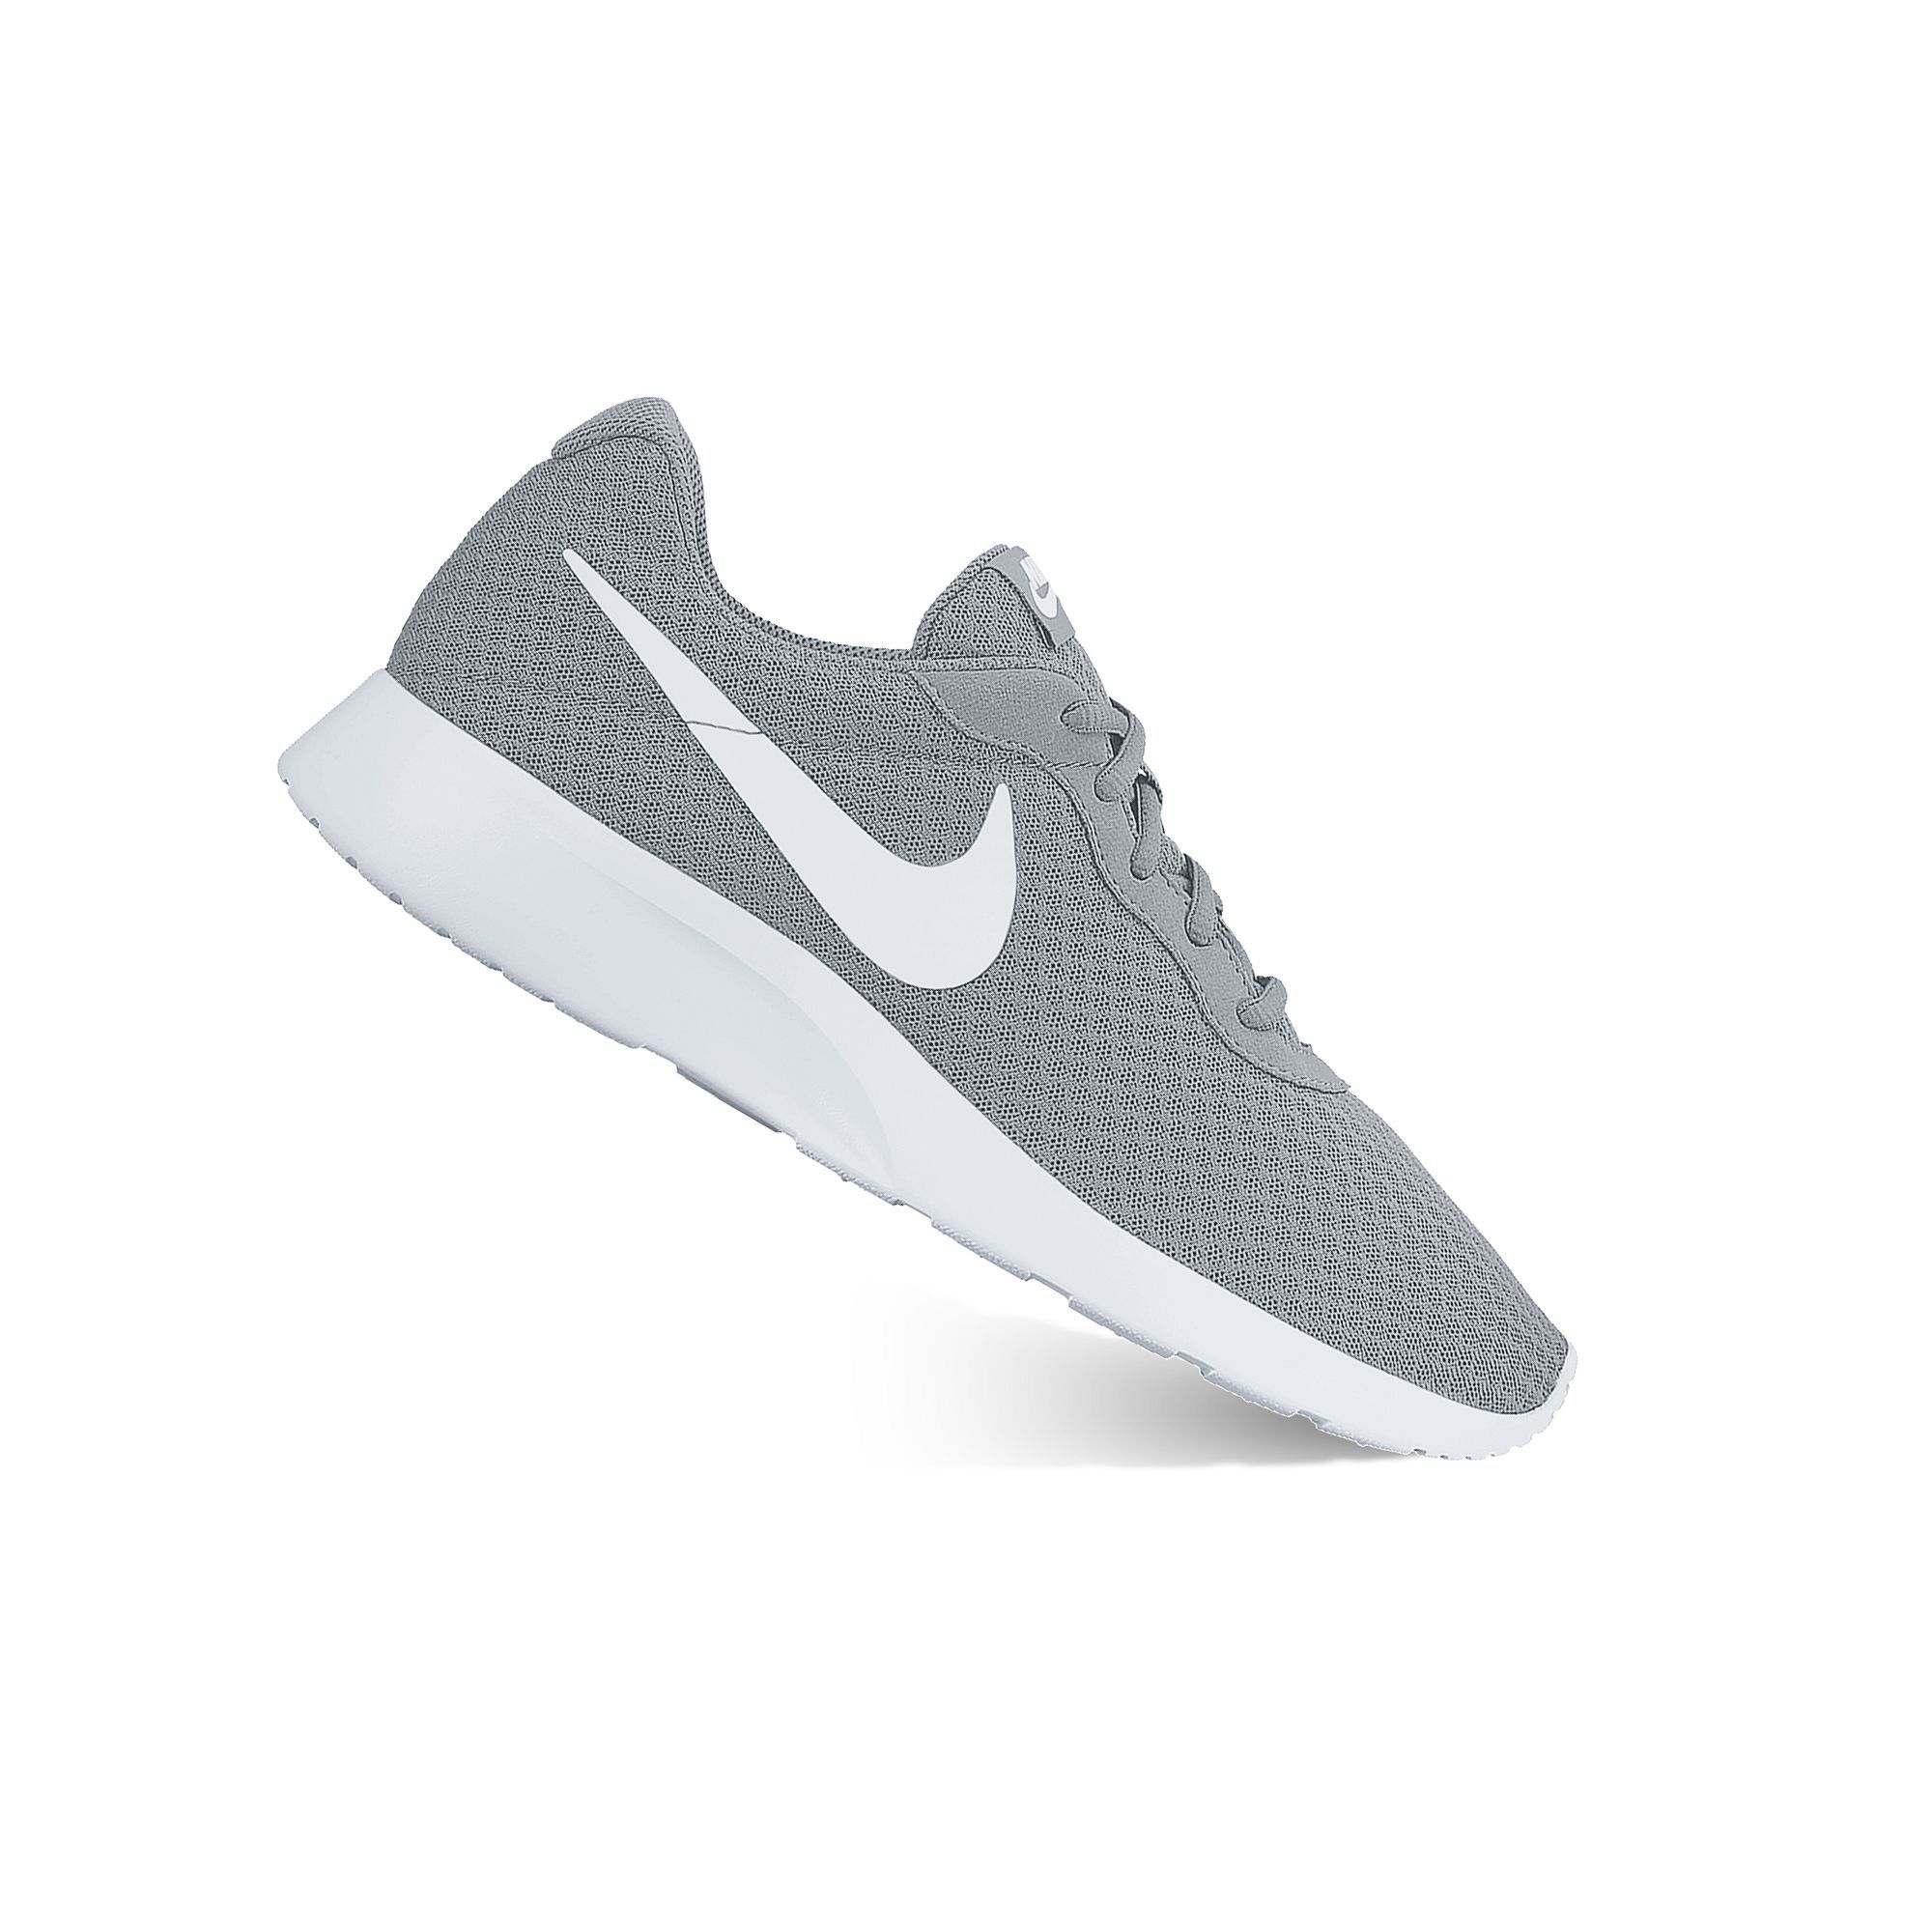 new product 6512b ff357 Nike Tanjun Men s Athletic Shoes, Size  10.5, Light Grey